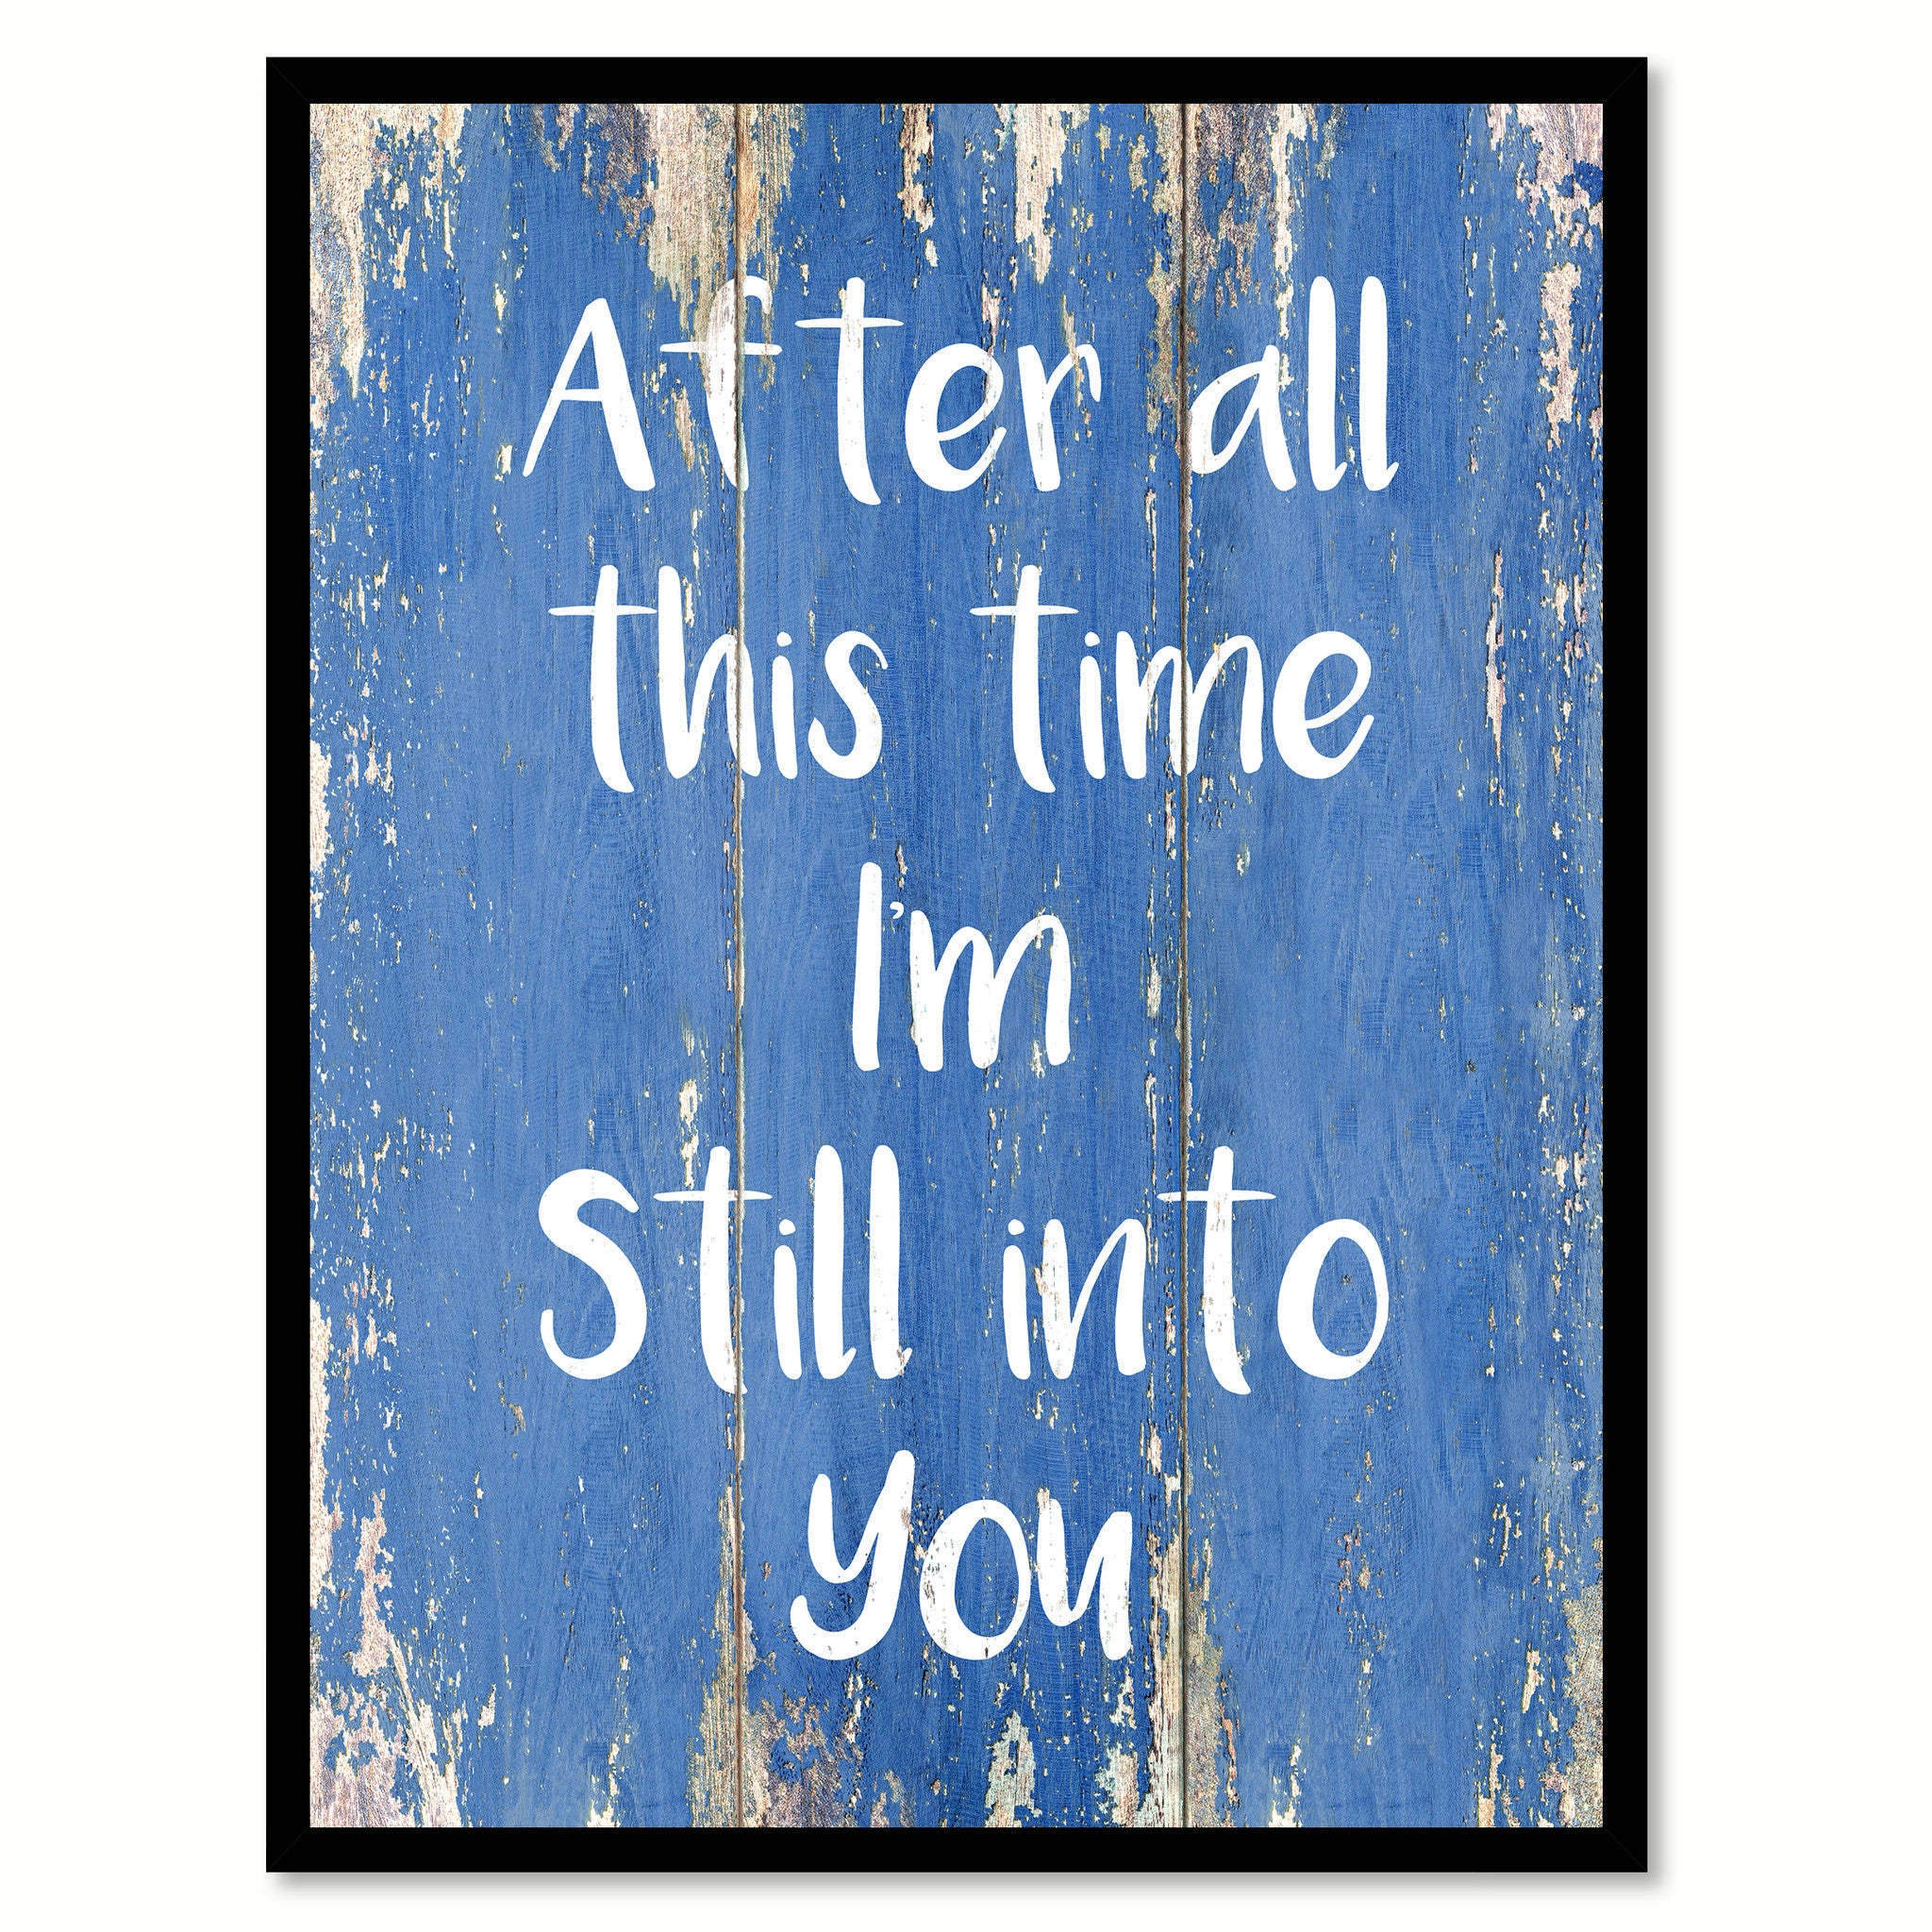 After All This Time I'm Still Into You Happy LoveQuote Saying Gift Ideas Home Decor Wall Art